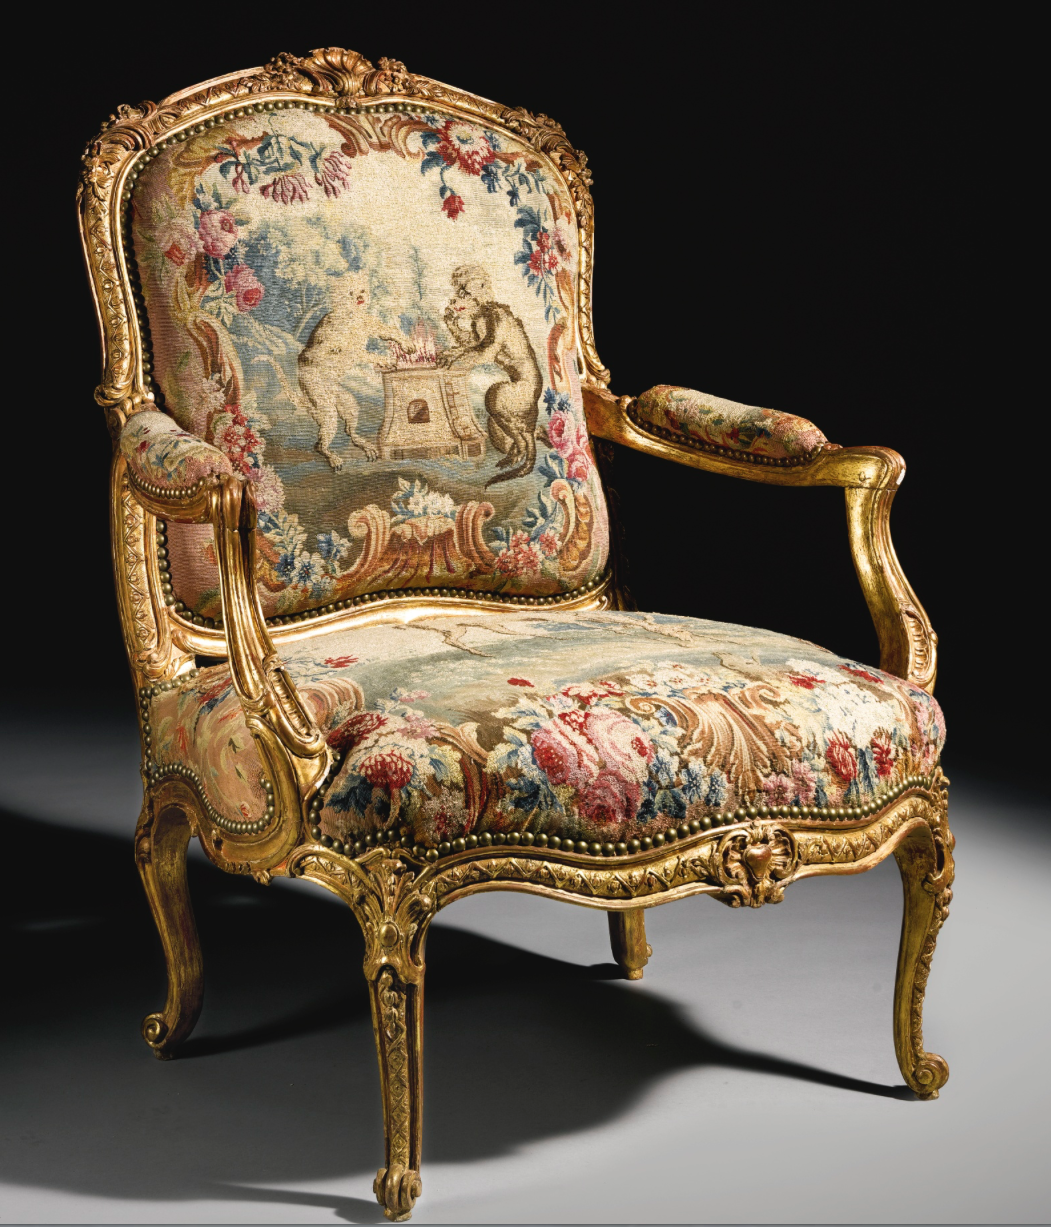 Styles Fauteuils A Rare Pair Of Louis Xv Carved Giltwood Fauteuils Attributed To